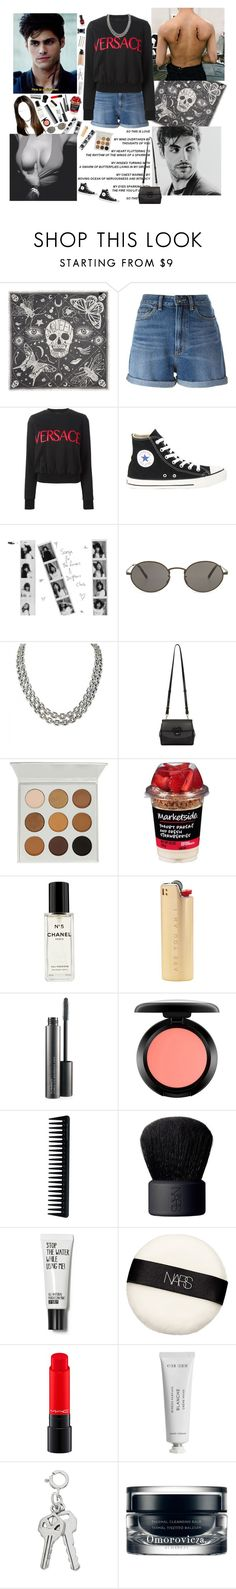 """Sin título #1365"" by tea-and-flowers ❤ liked on Polyvore featuring Alexander McQueen, Marc by Marc Jacobs, Versace, Converse, Oliver Peoples, David Yurman, Chanel, MAC Cosmetics, GHD and NARS Cosmetics"